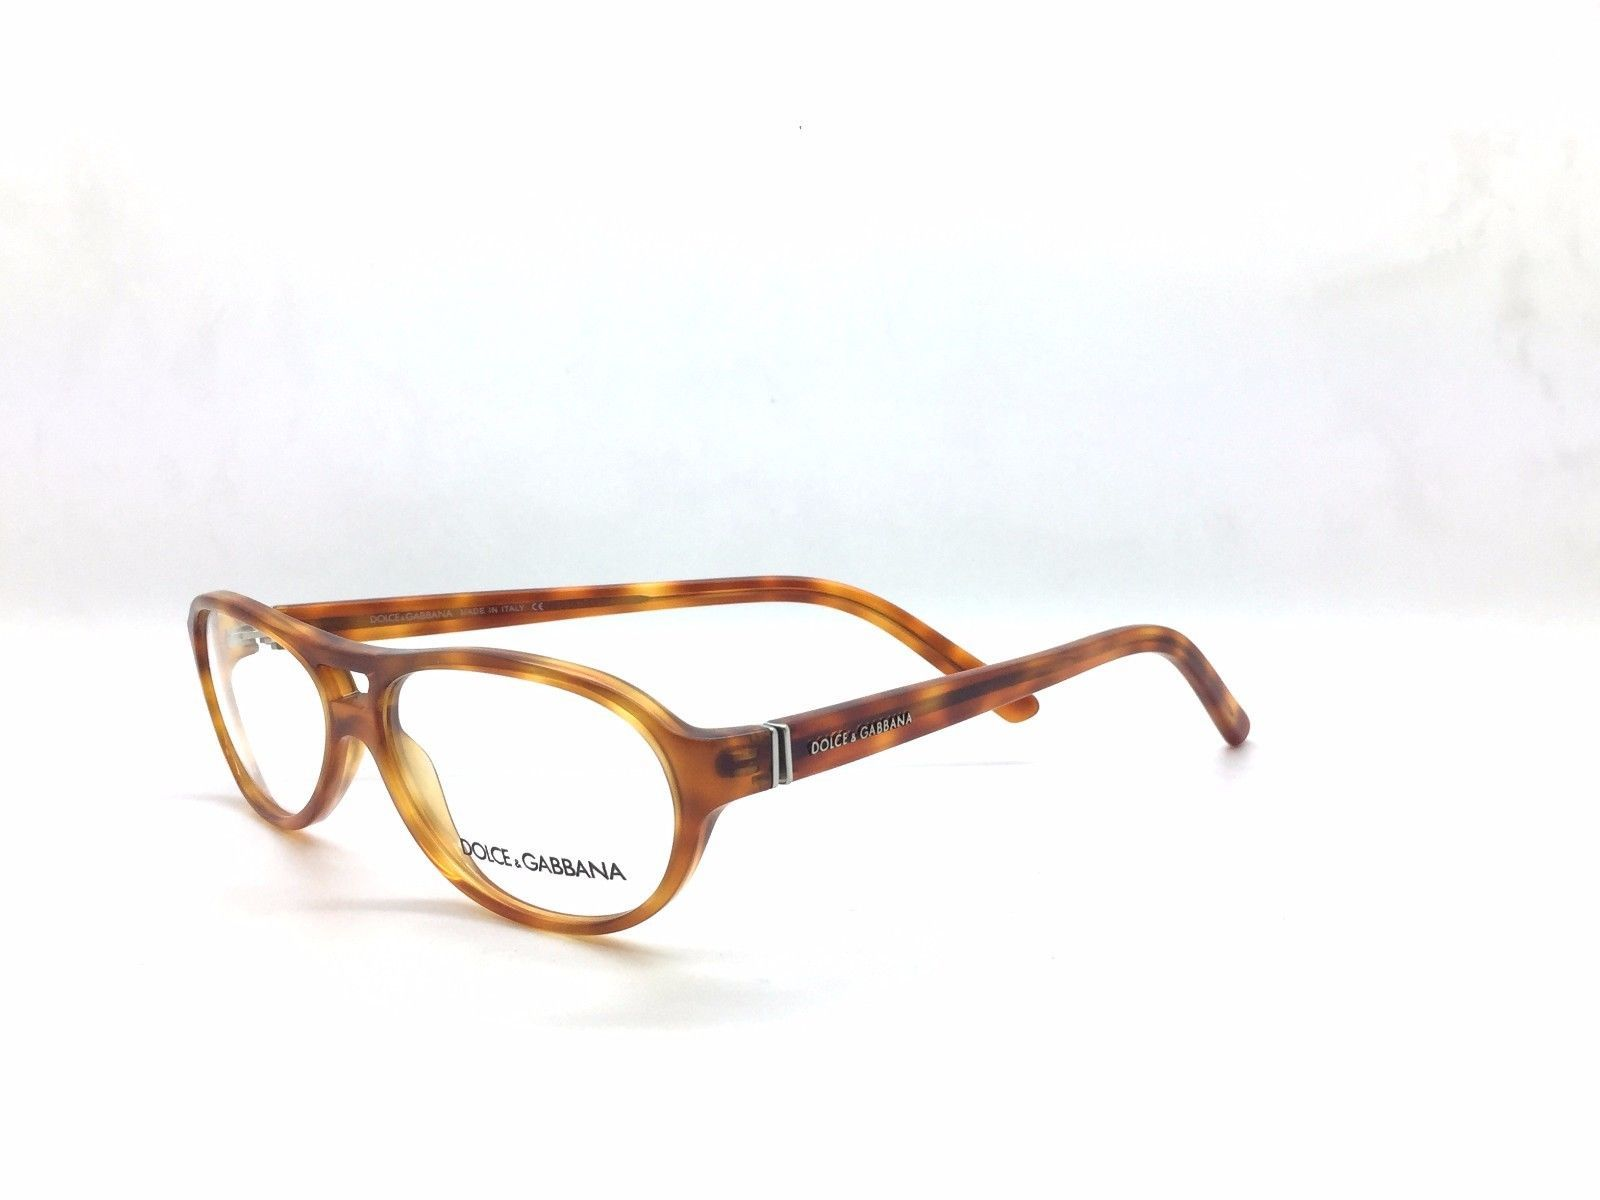 54ccedea3ee New Dolce   Gabbana Eyeglass Mod. 3047 and similar items. S l1600